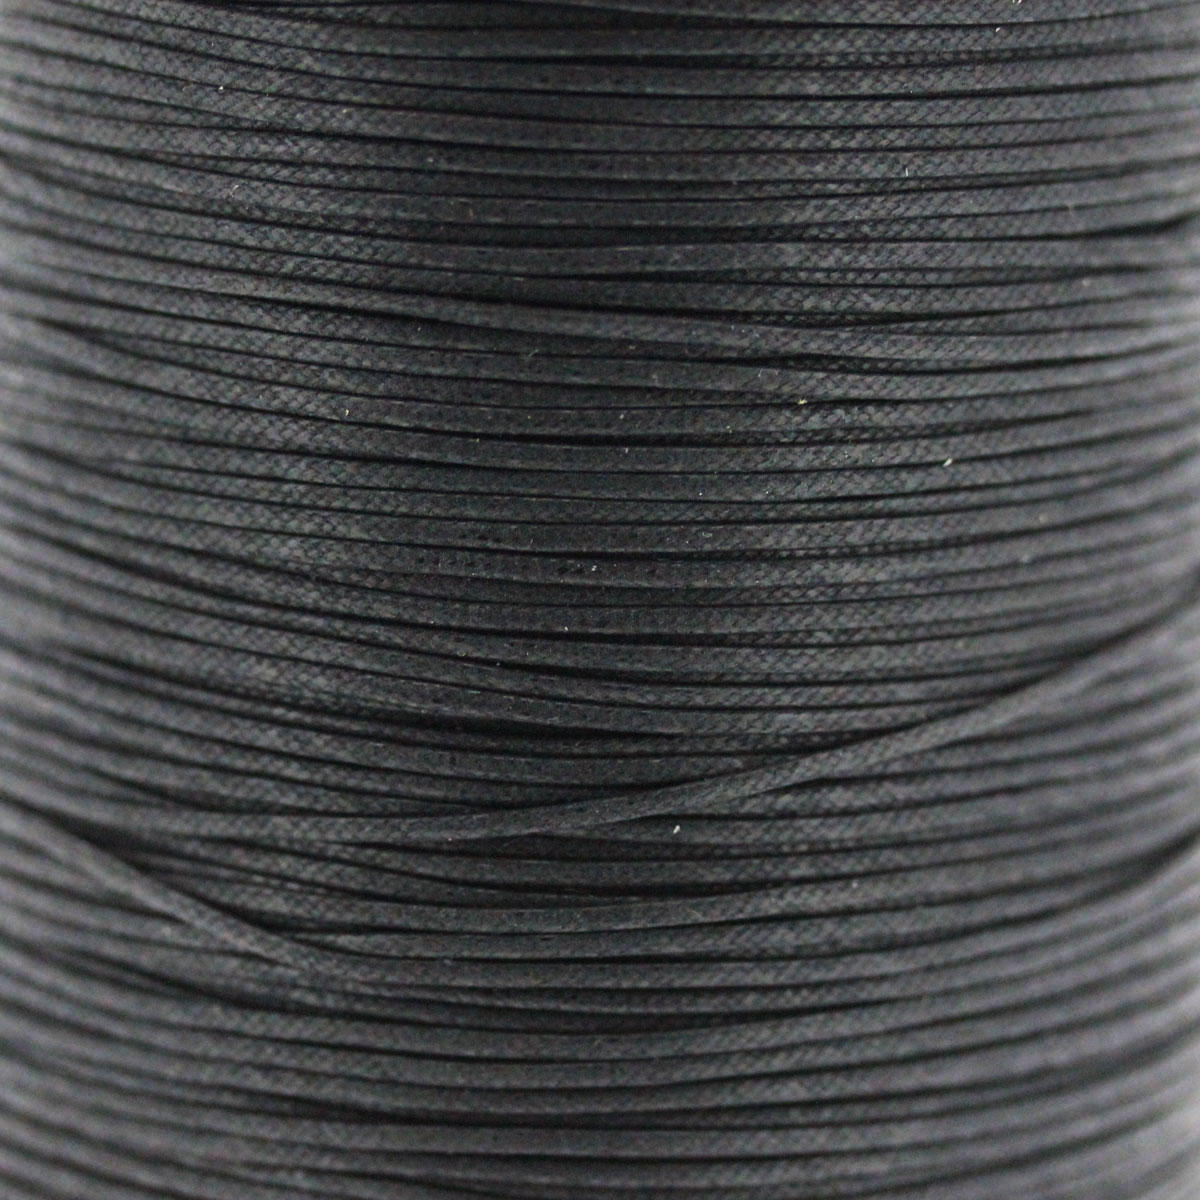 Black 1.5mm Cotton Bead Cord